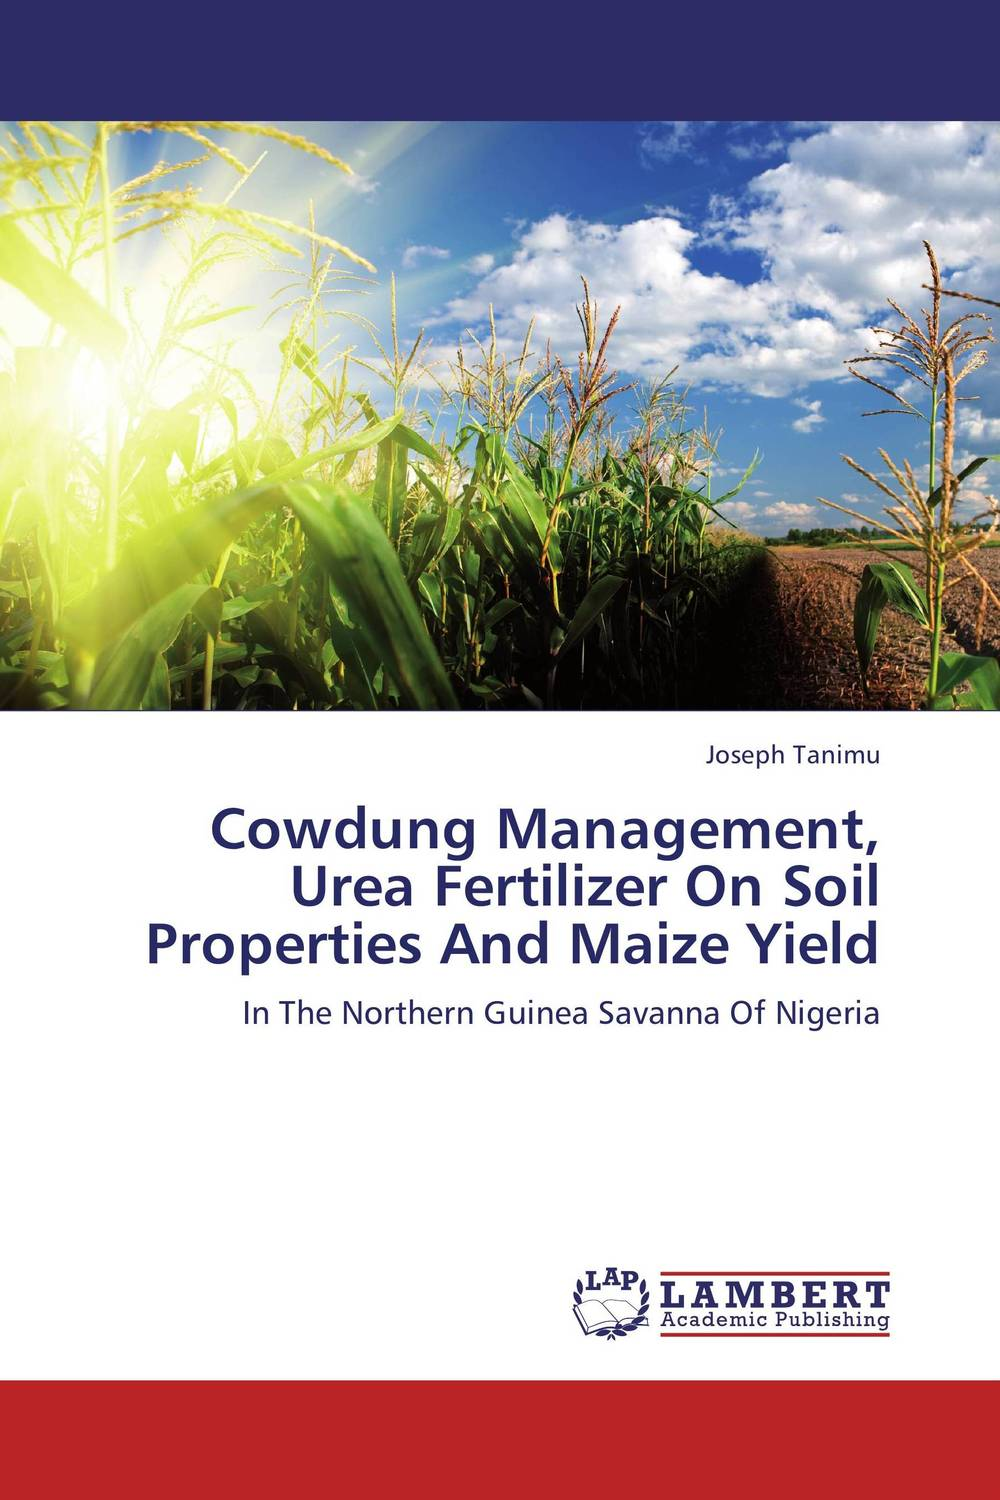 Cowdung Management, Urea Fertilizer On Soil Properties And Maize Yield evaluation of various methods of fertilizer application in potato